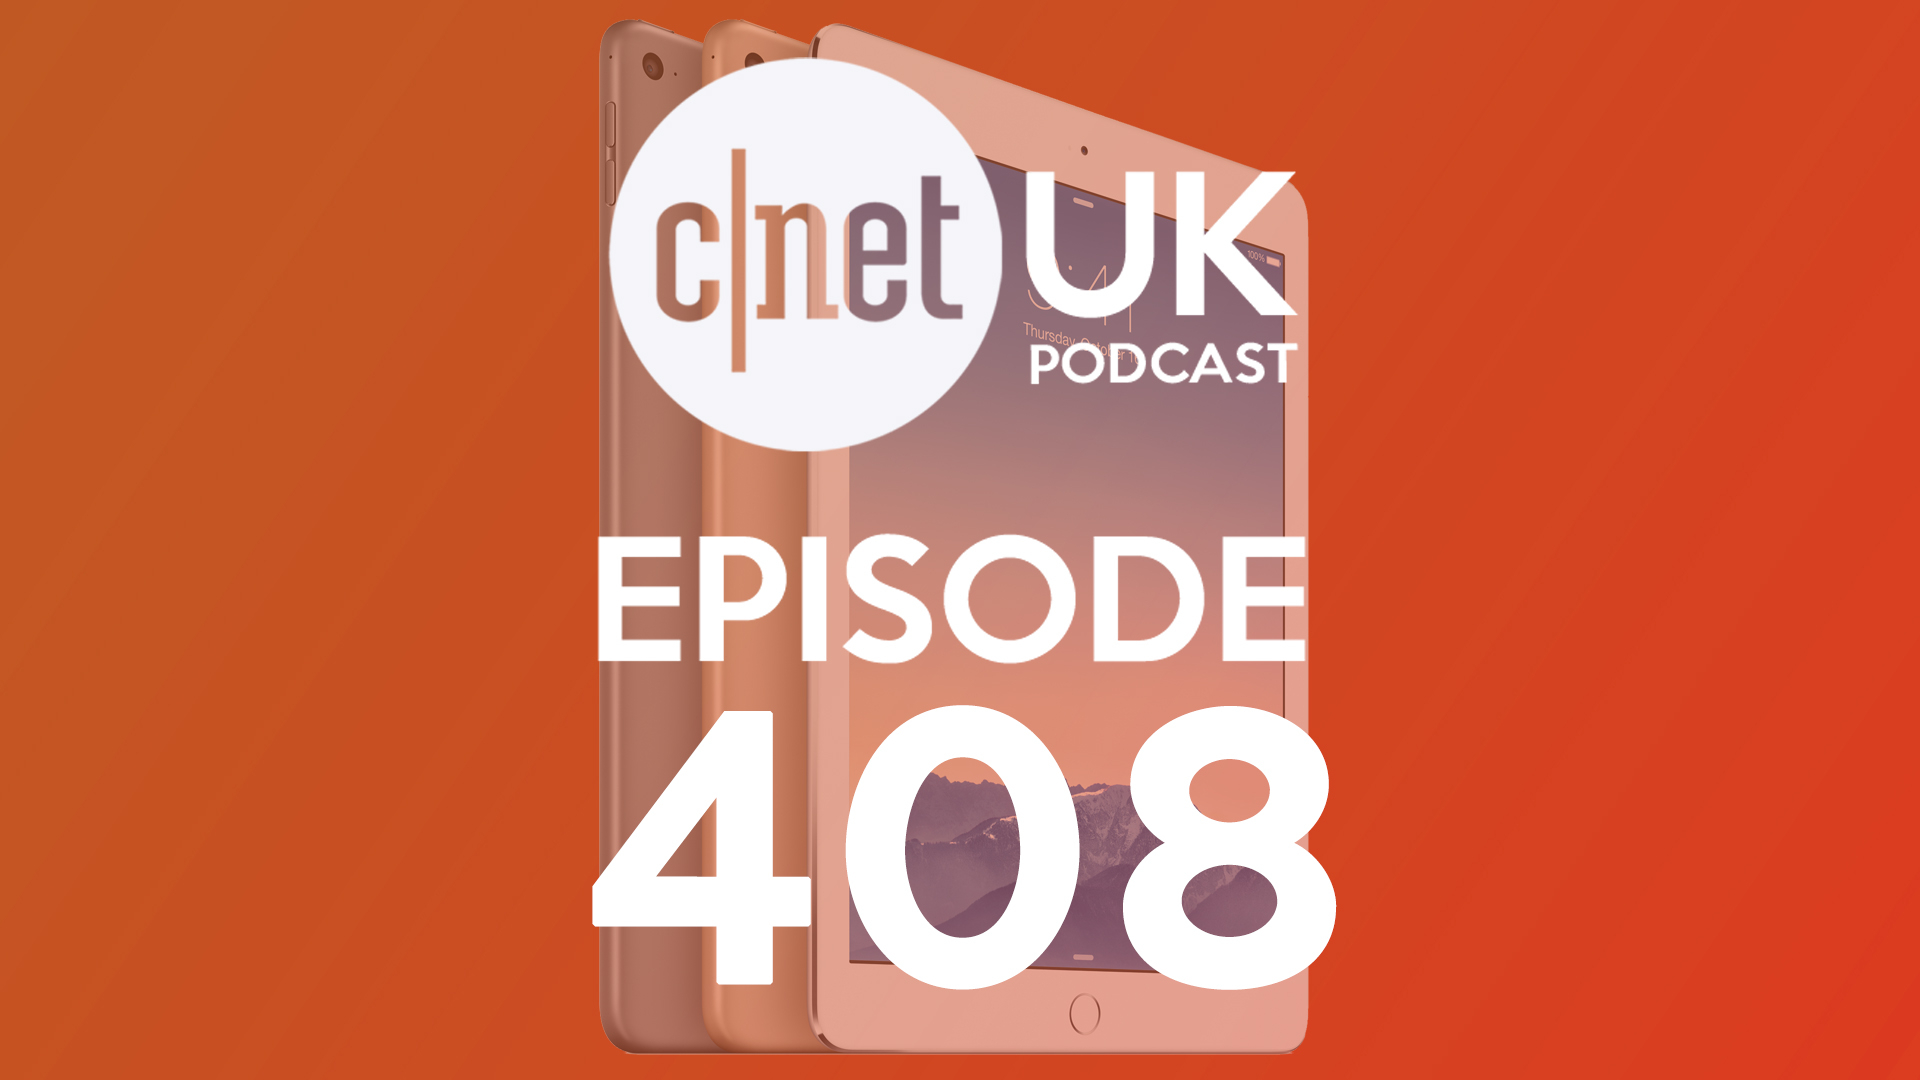 Video: Press record for new iPads, Nexuses and a Spotify tape player in CNET UK podcast 408